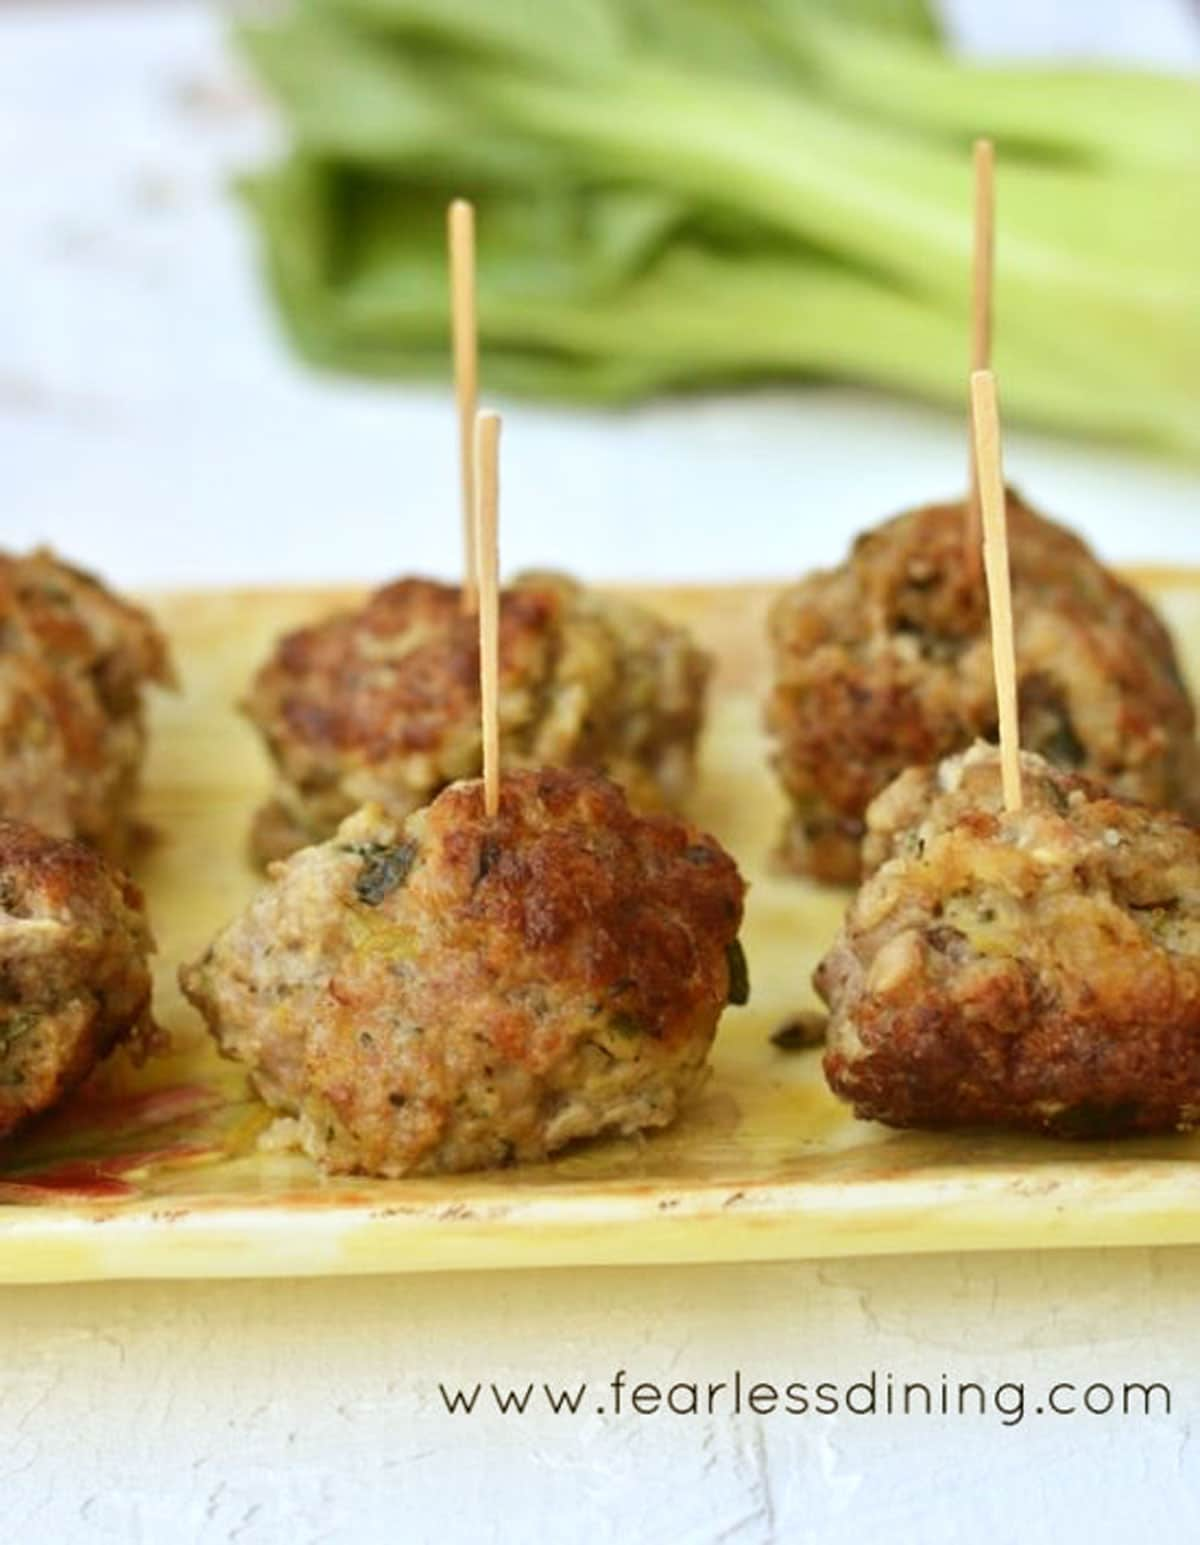 a close up of the meatballs